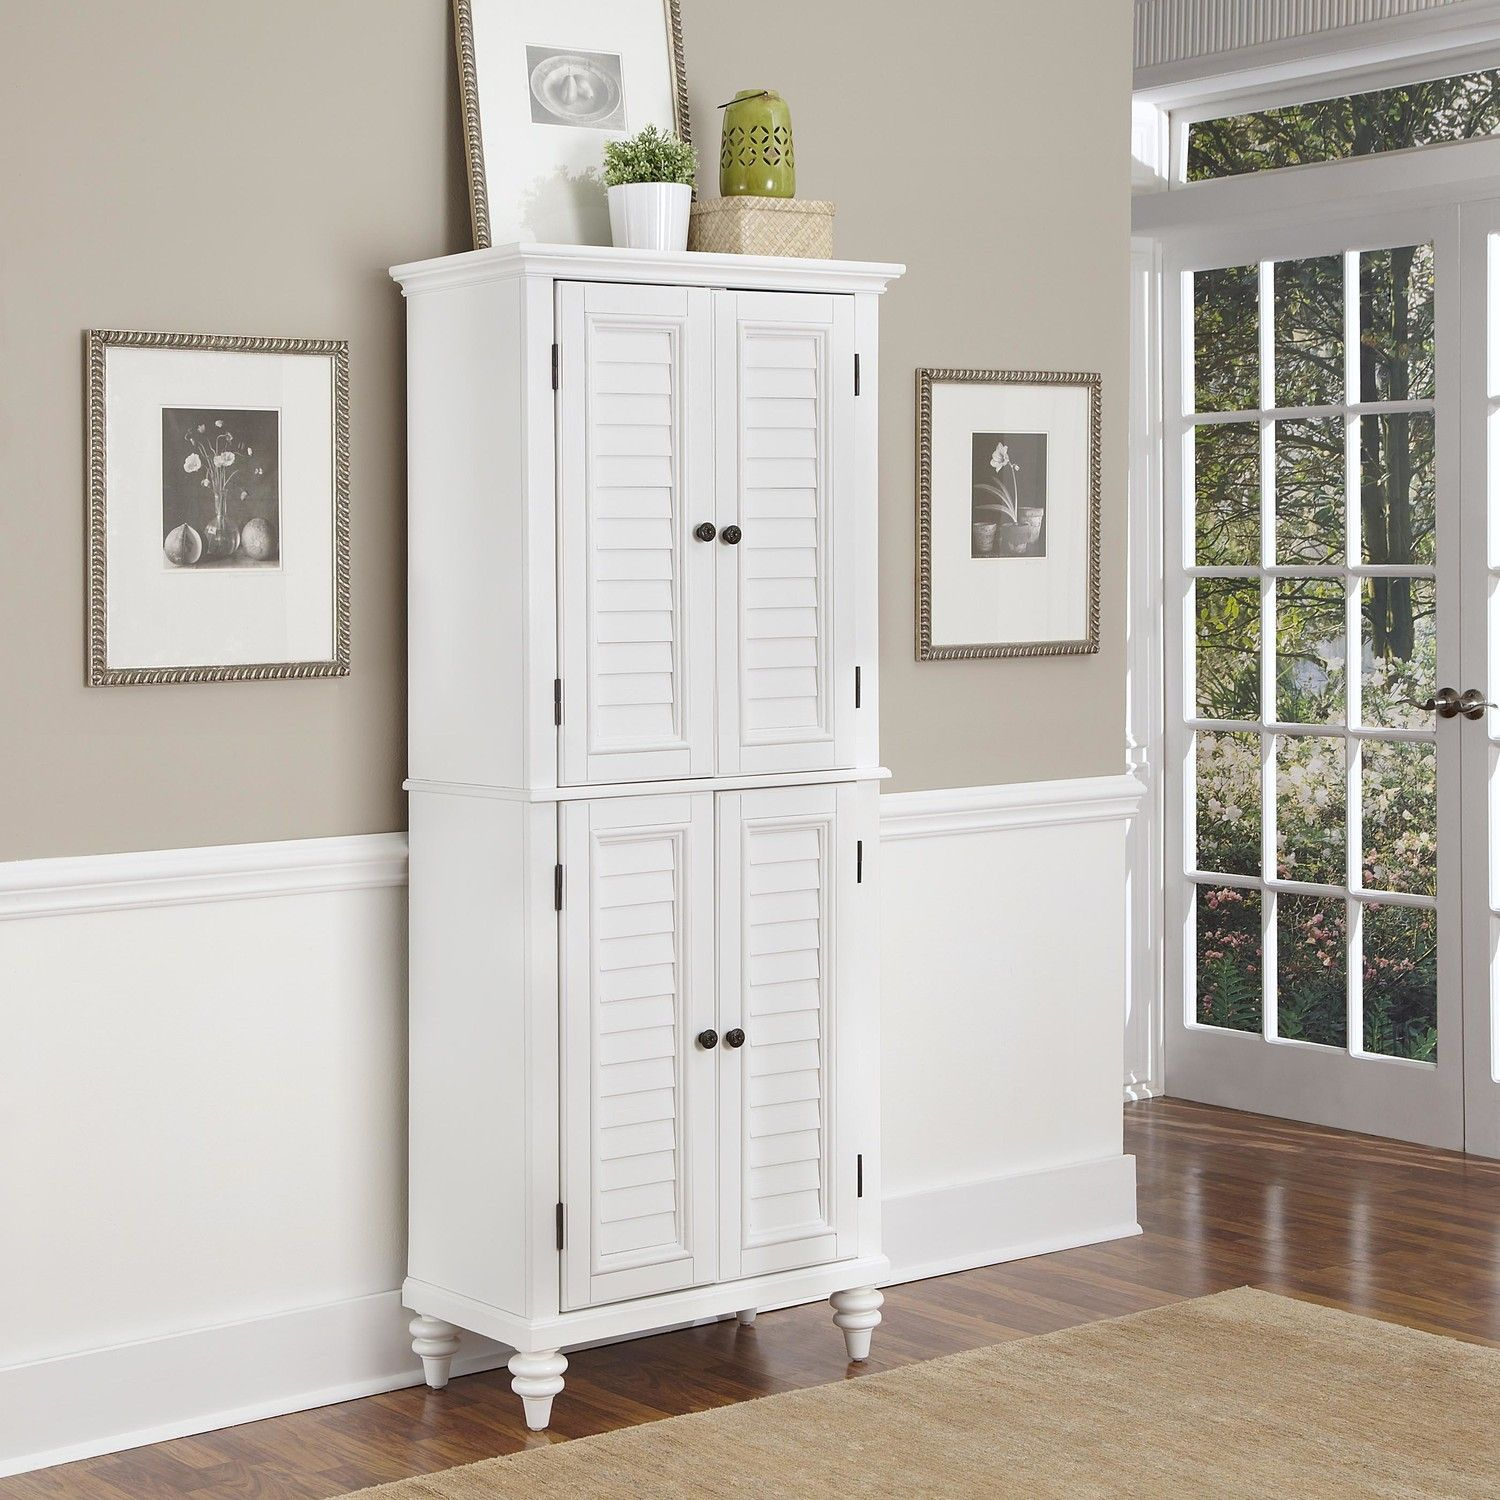 Door Pantry Cabinet With Furniture: Portable Kitchen